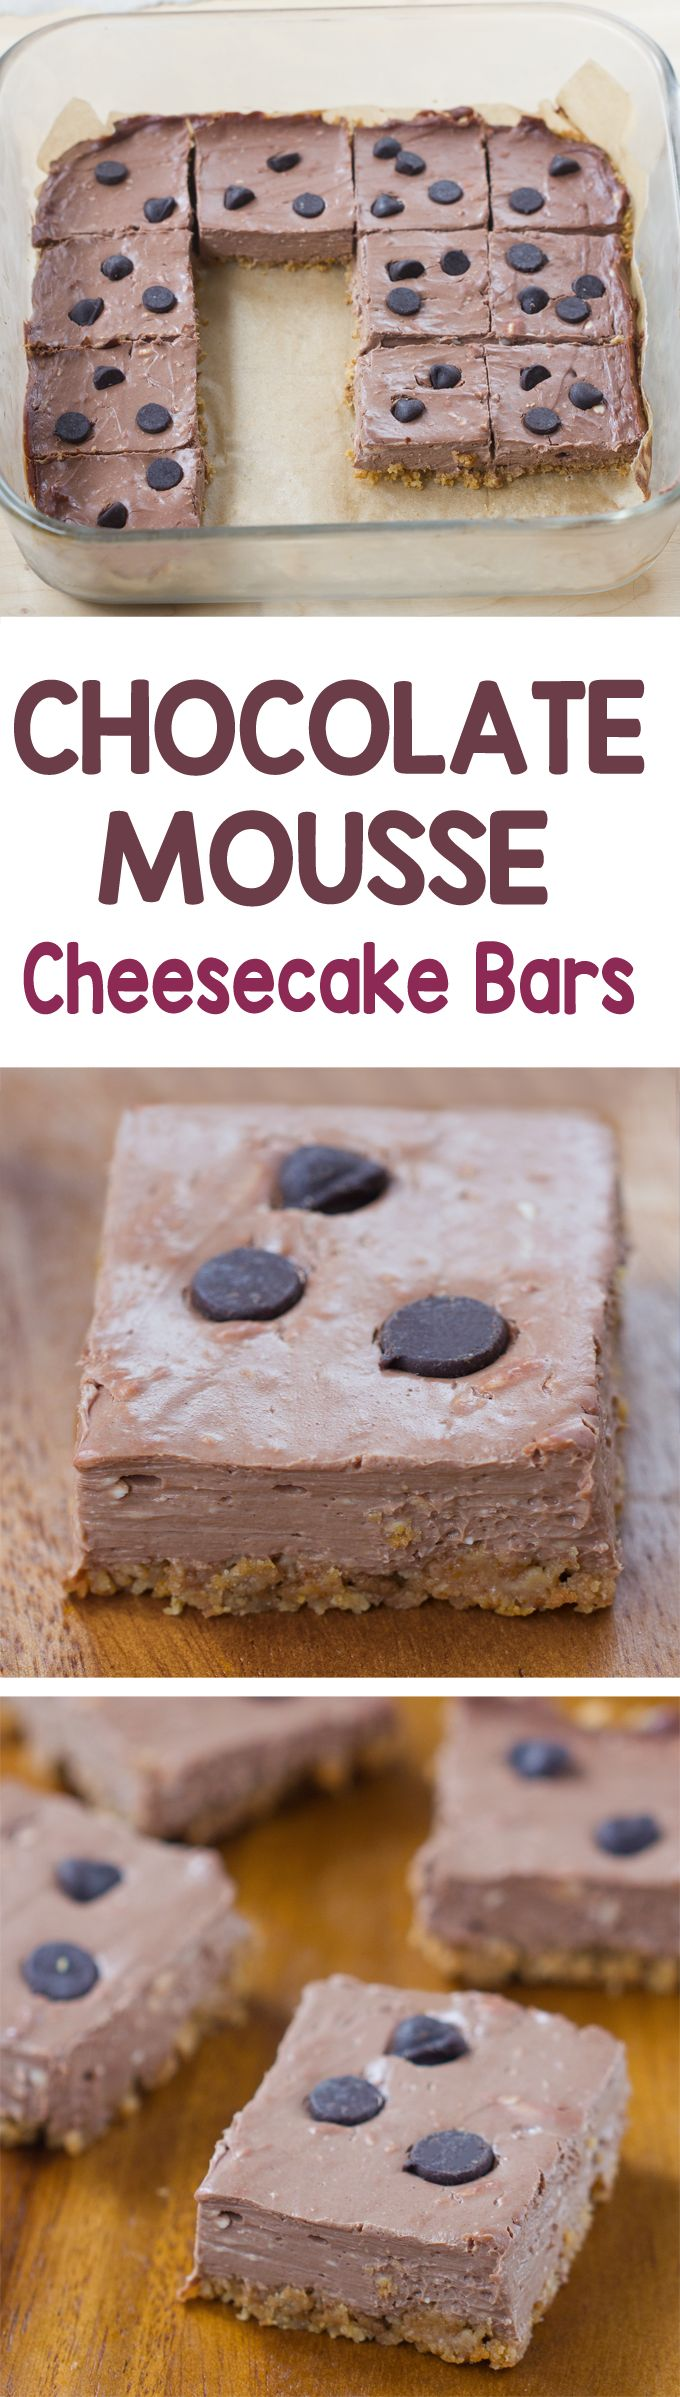 Chocolate Cheesecake Bars - Ingredients: 1/4 cup cocoa powder, 2/3 cup yogurt…